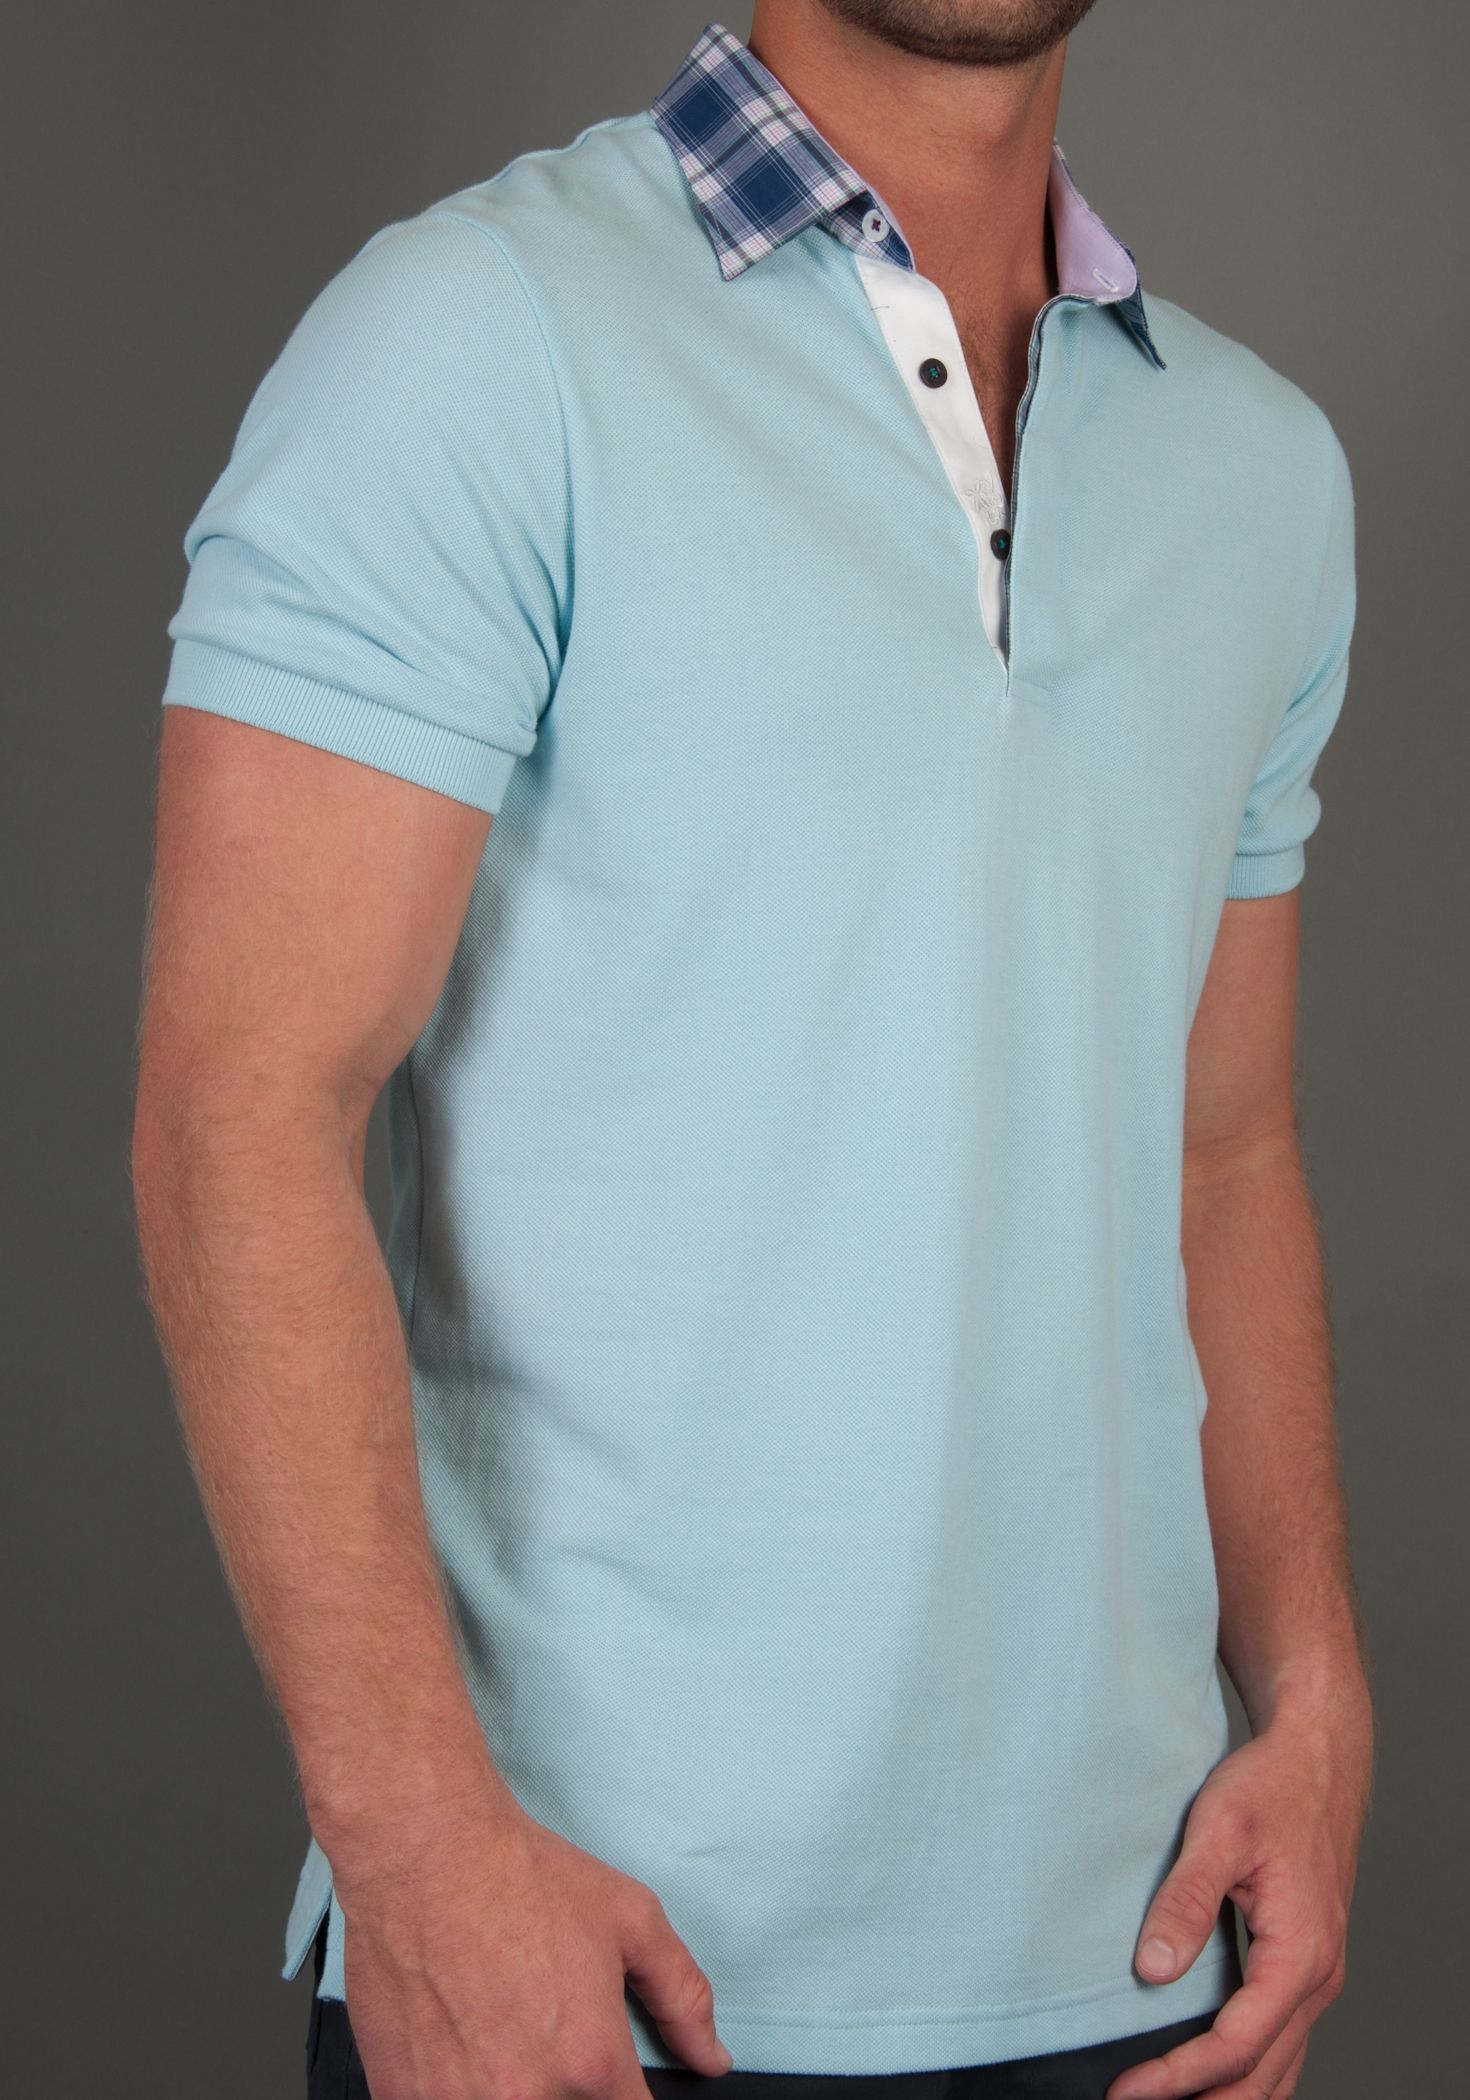 Mens polo shirts a pastel blue polo shirt fitted body for Man in polo shirt